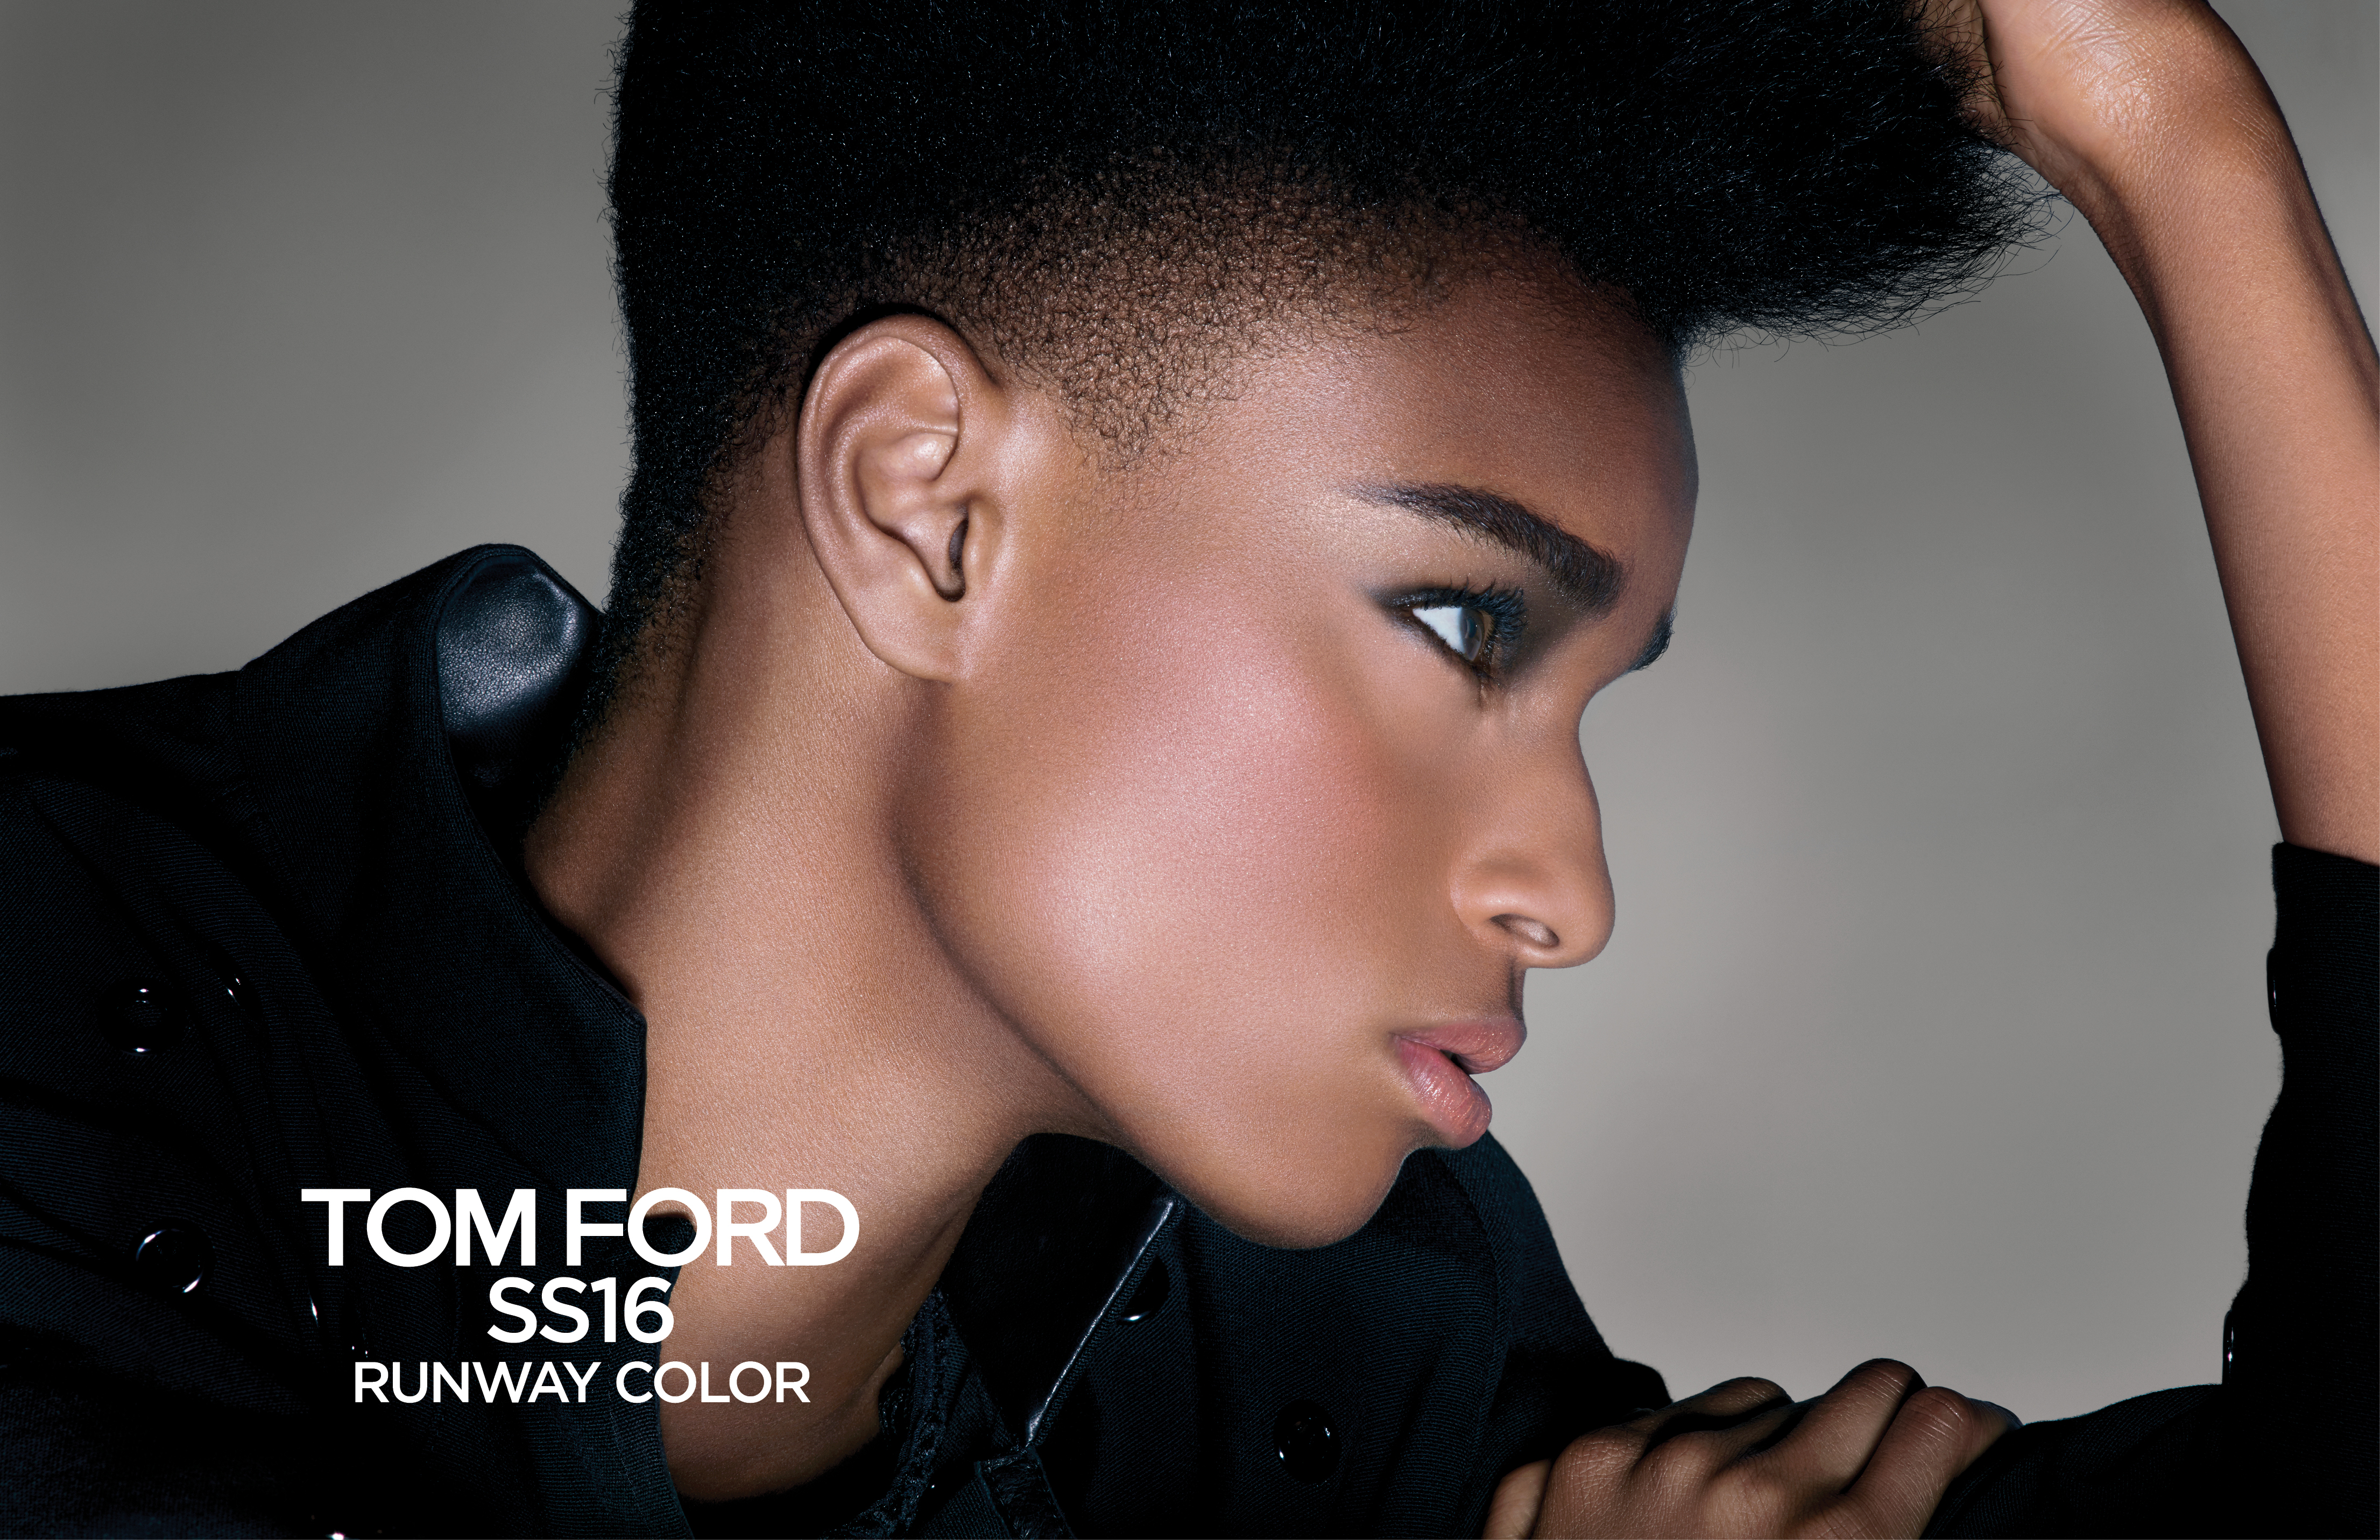 Tom Ford Runway Color SS16